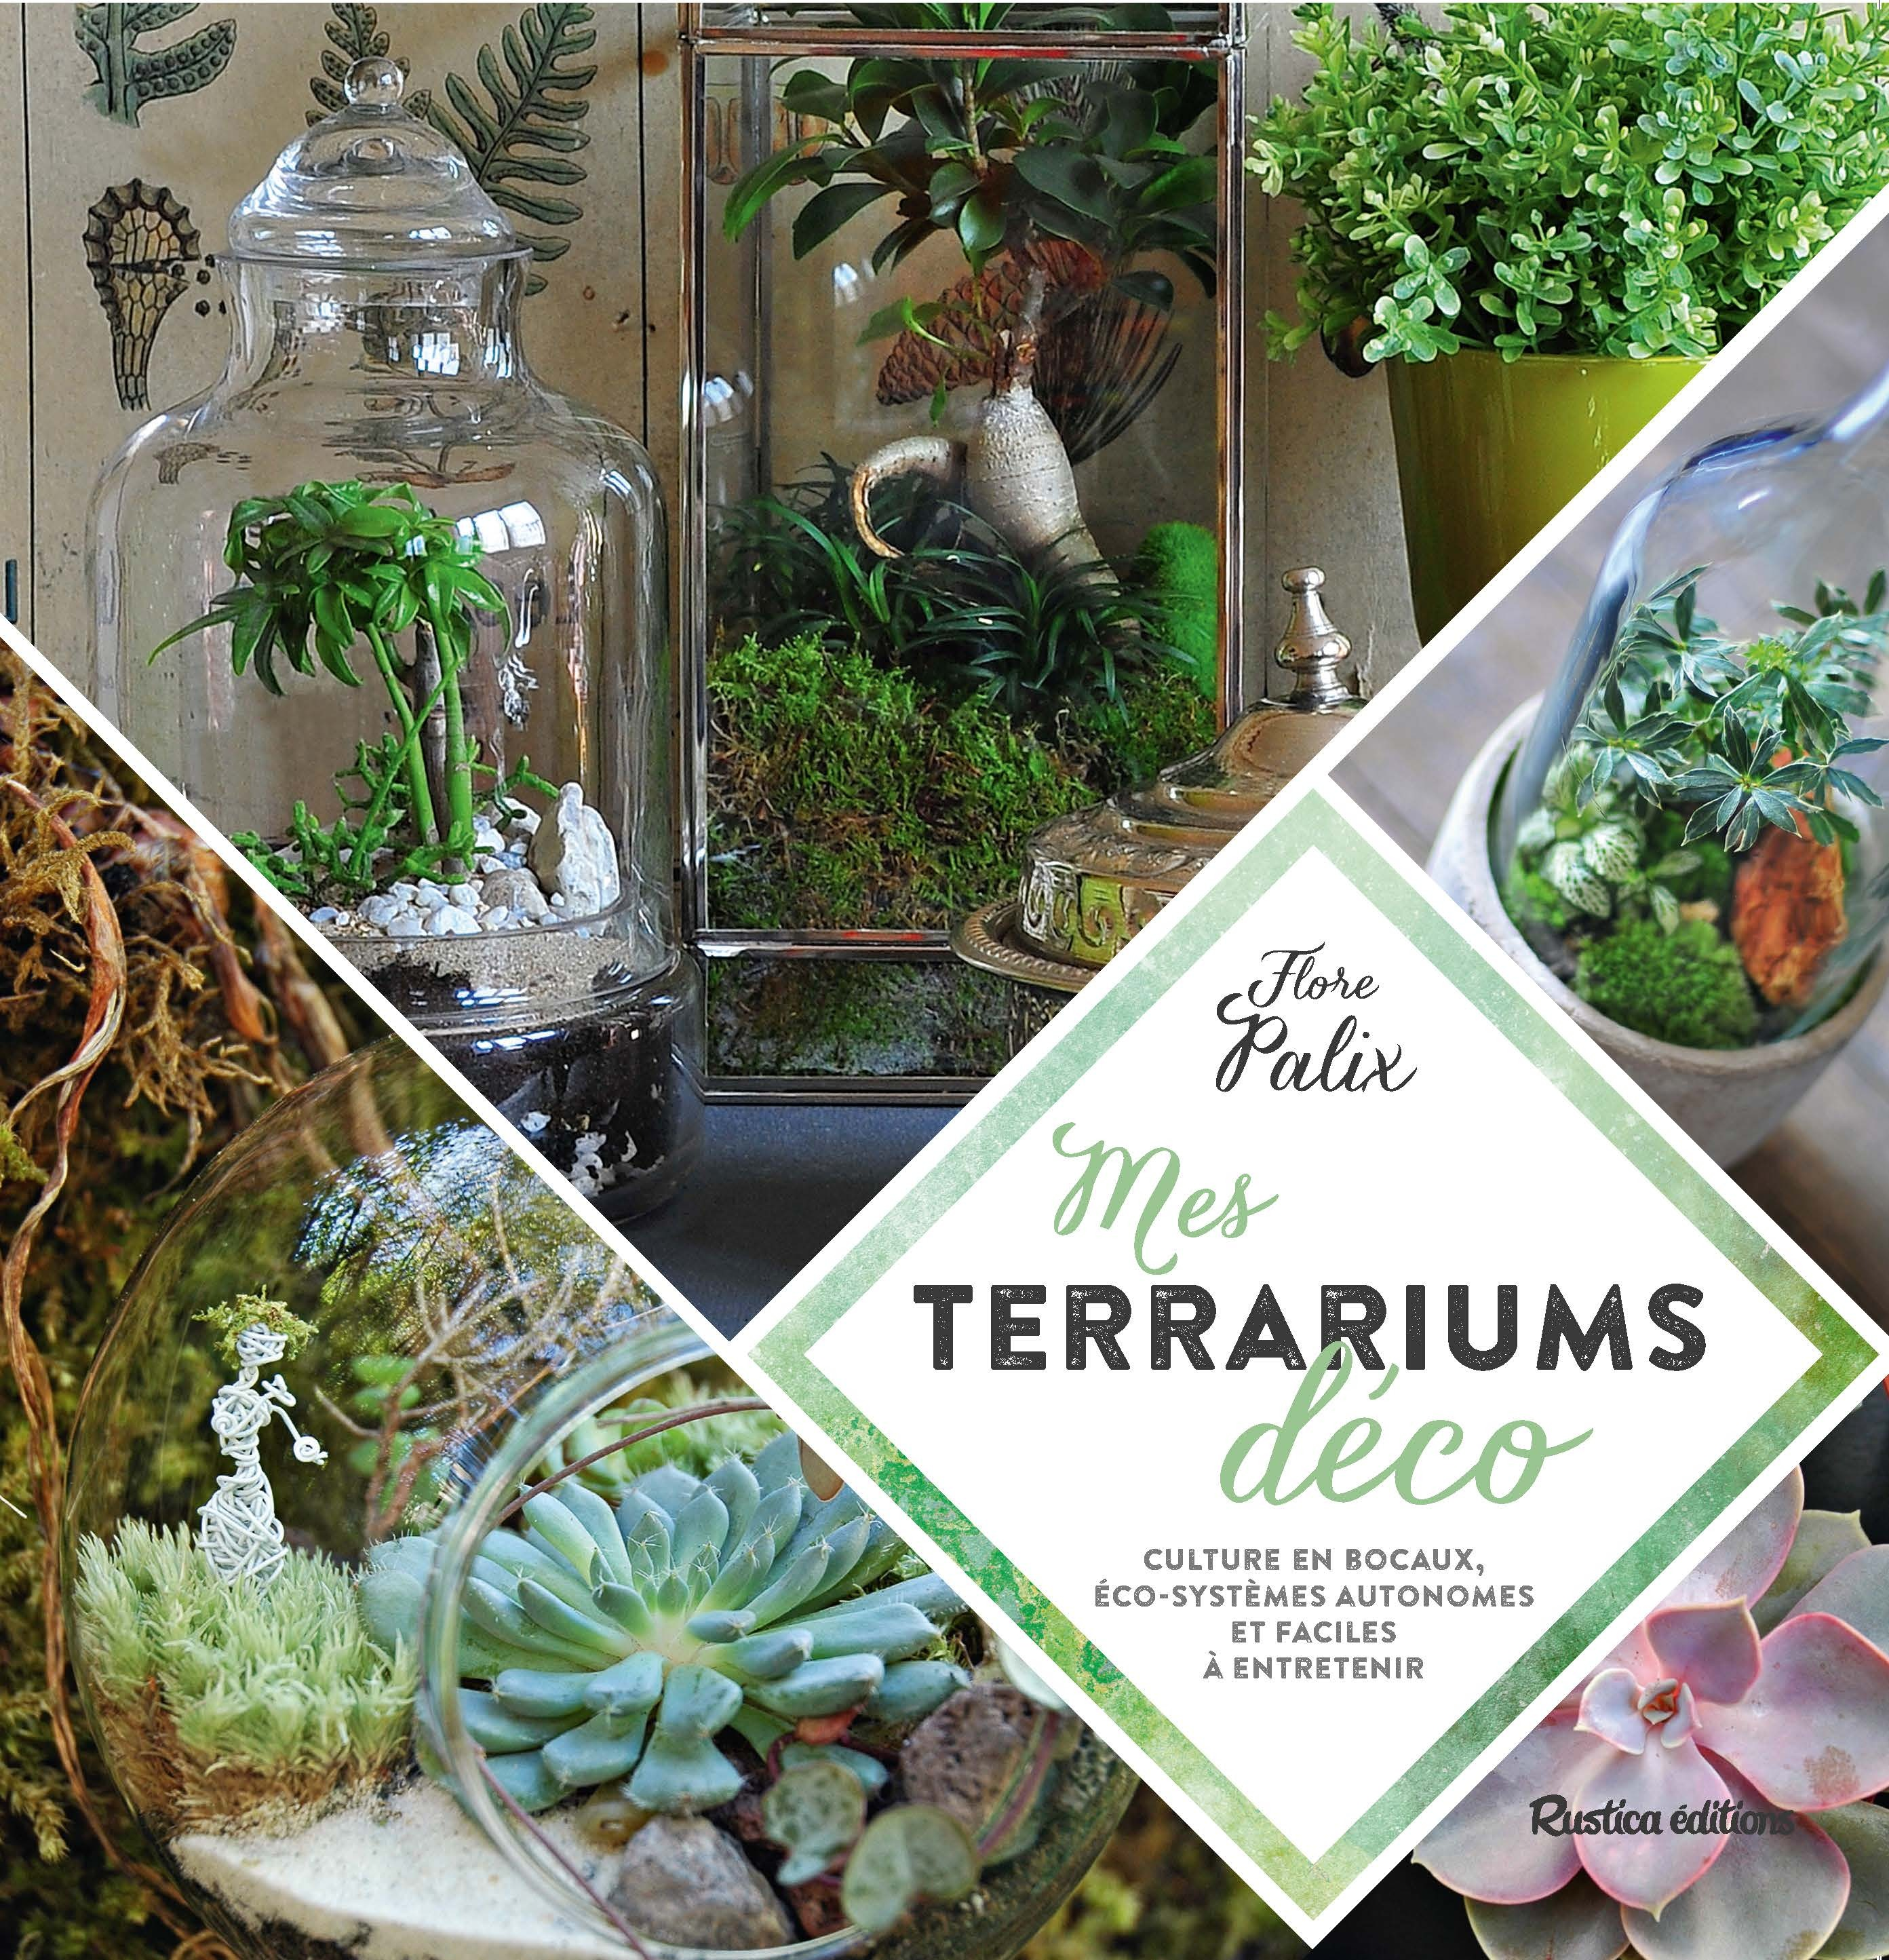 MES TERRARIUMS DECO